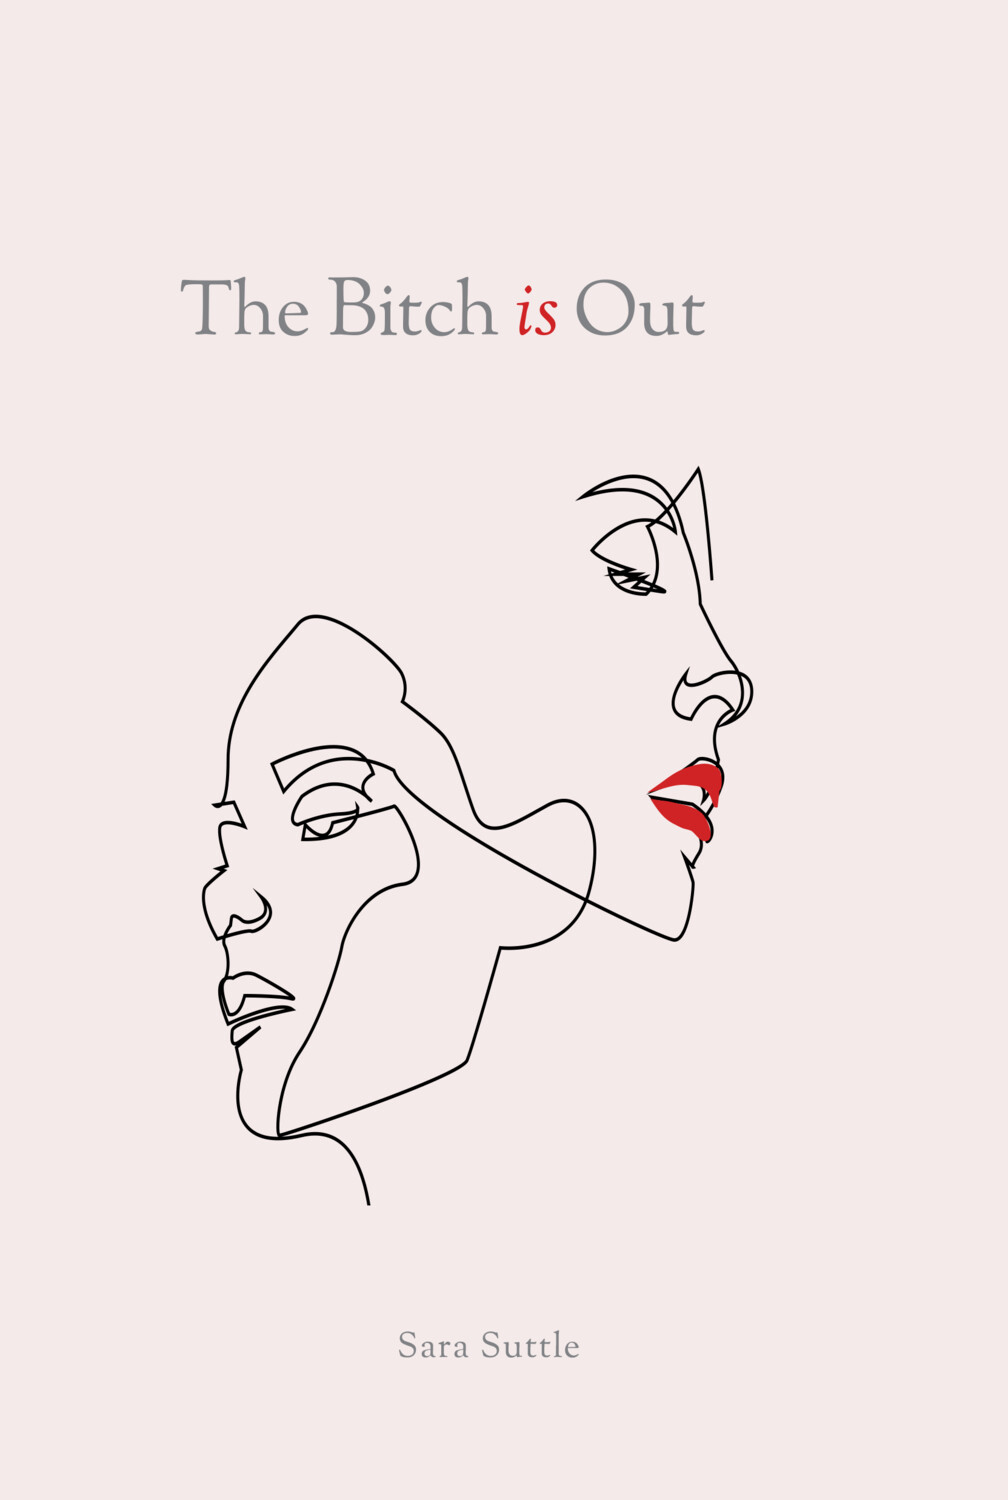 The Bitch is out - Sara Suttle (Hardback)